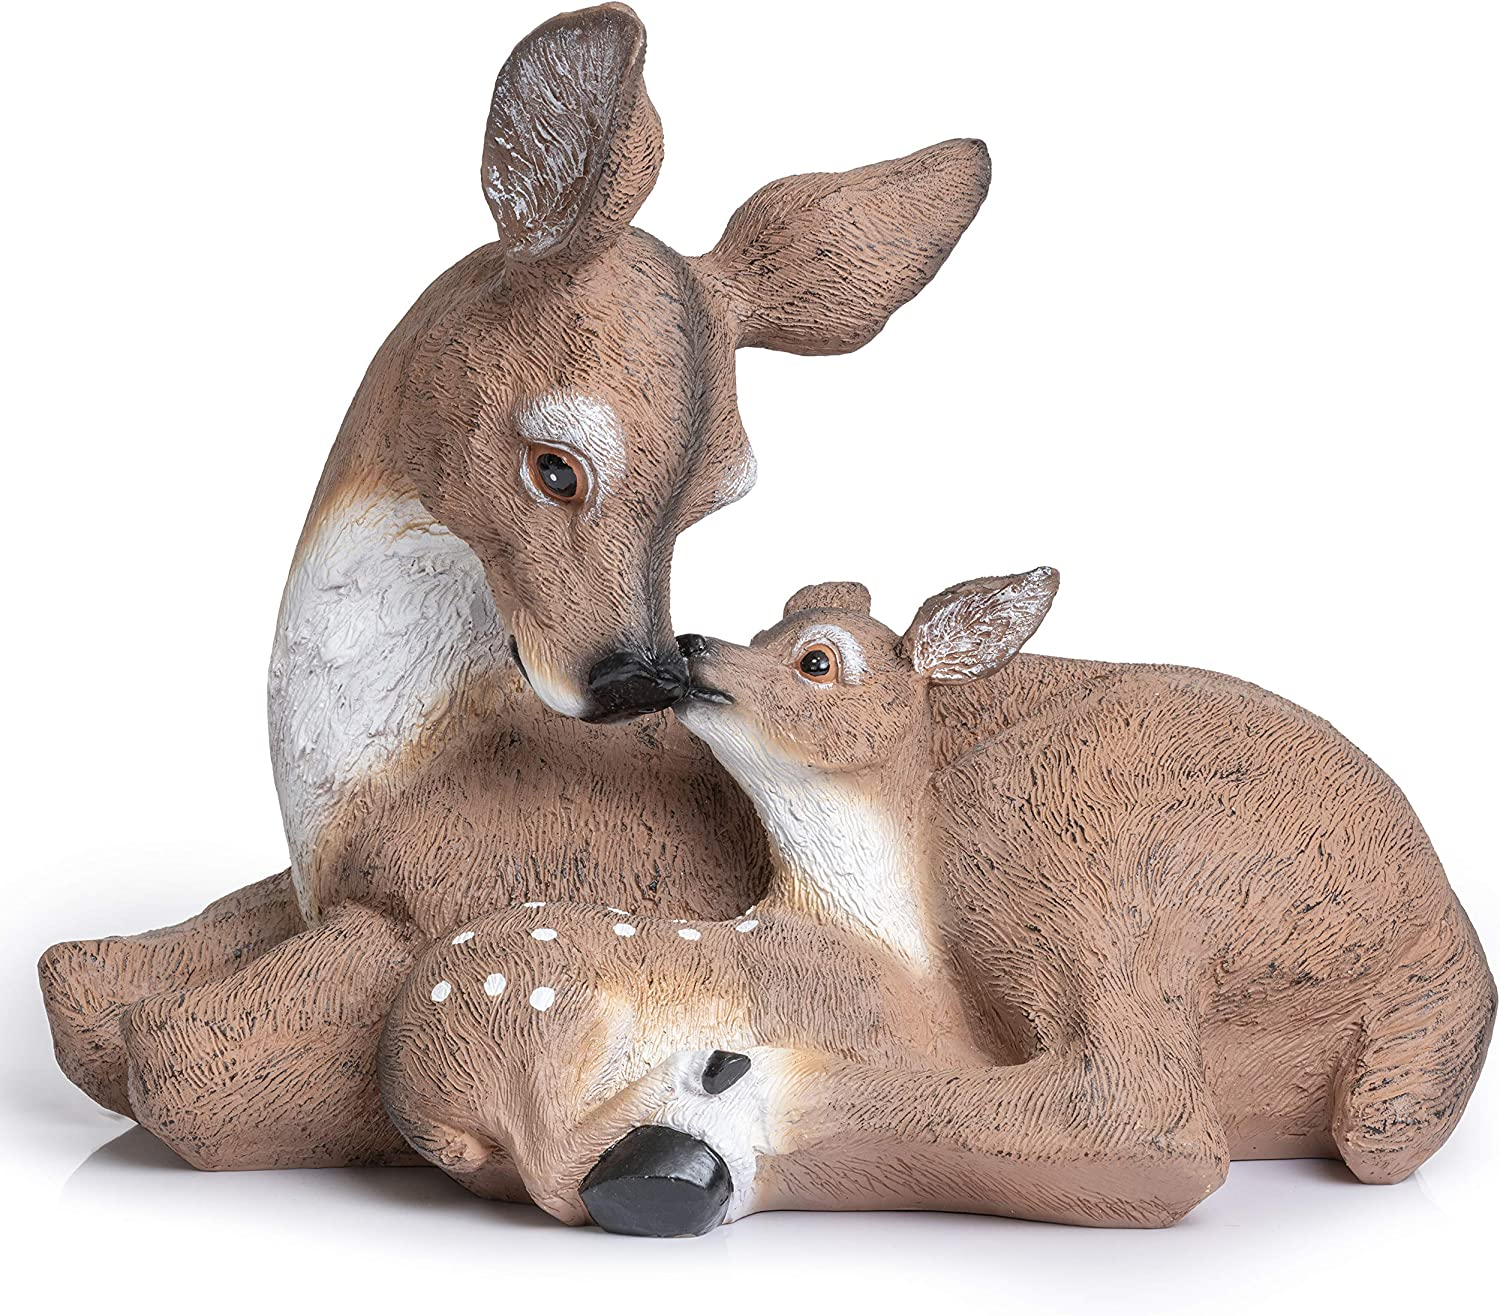 Deer Statue Yard Garden Decorations | Adorable Doe & Fawn Look Great in Any Outdoor Living Space | Animal Figurines Great Indoors, Cabin, Rustic Decor | 10 x 12-1/2 Inches